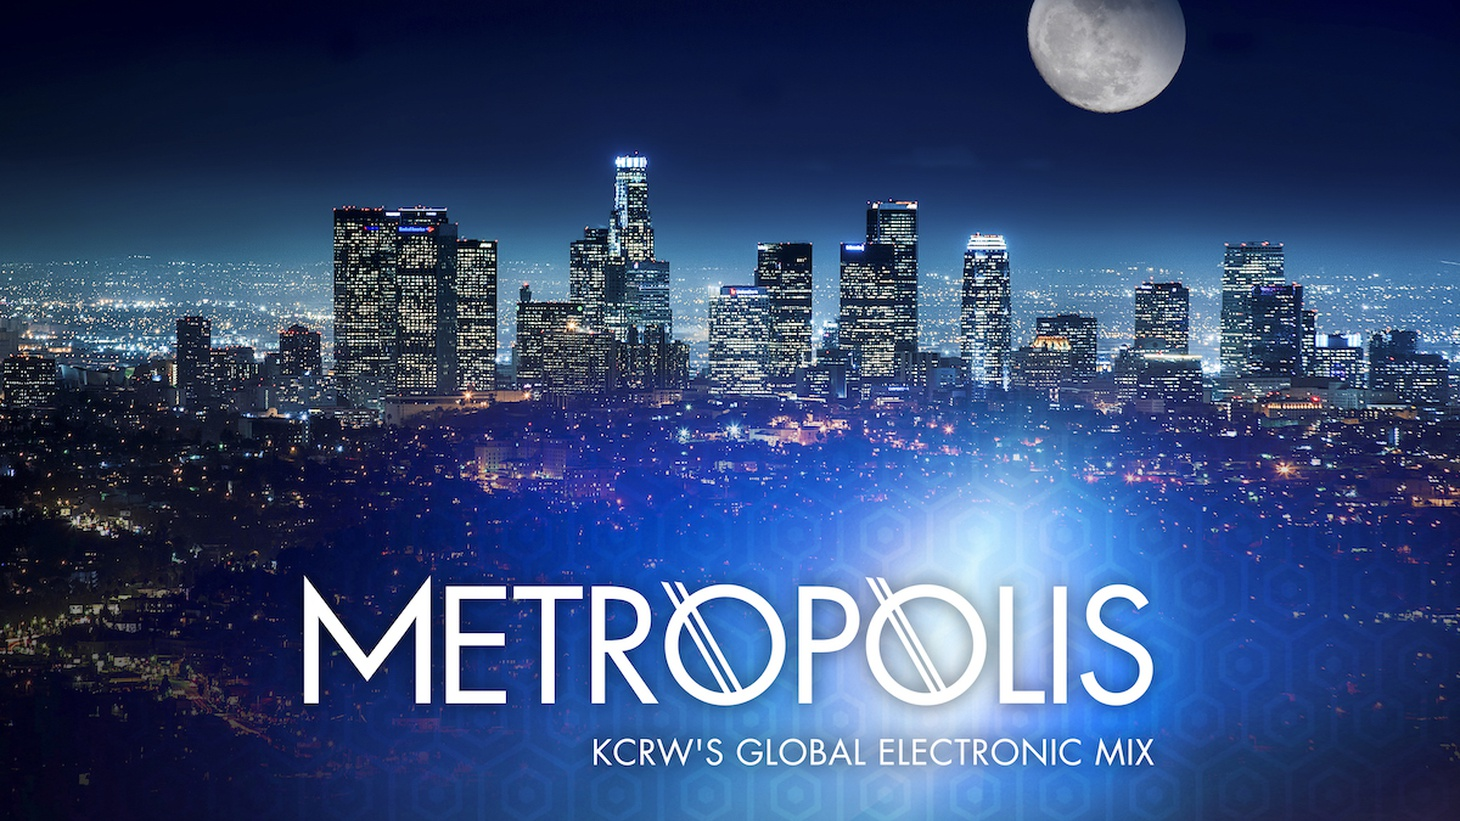 Local alternative dance luminaries The Crystal Method will stop by Metropolis in the 8 o'clock hour for an interview, and to debut a new mix compilation called Community Service (on sale July 23), featuring new songs and remixes by The Crystal Method themselves.